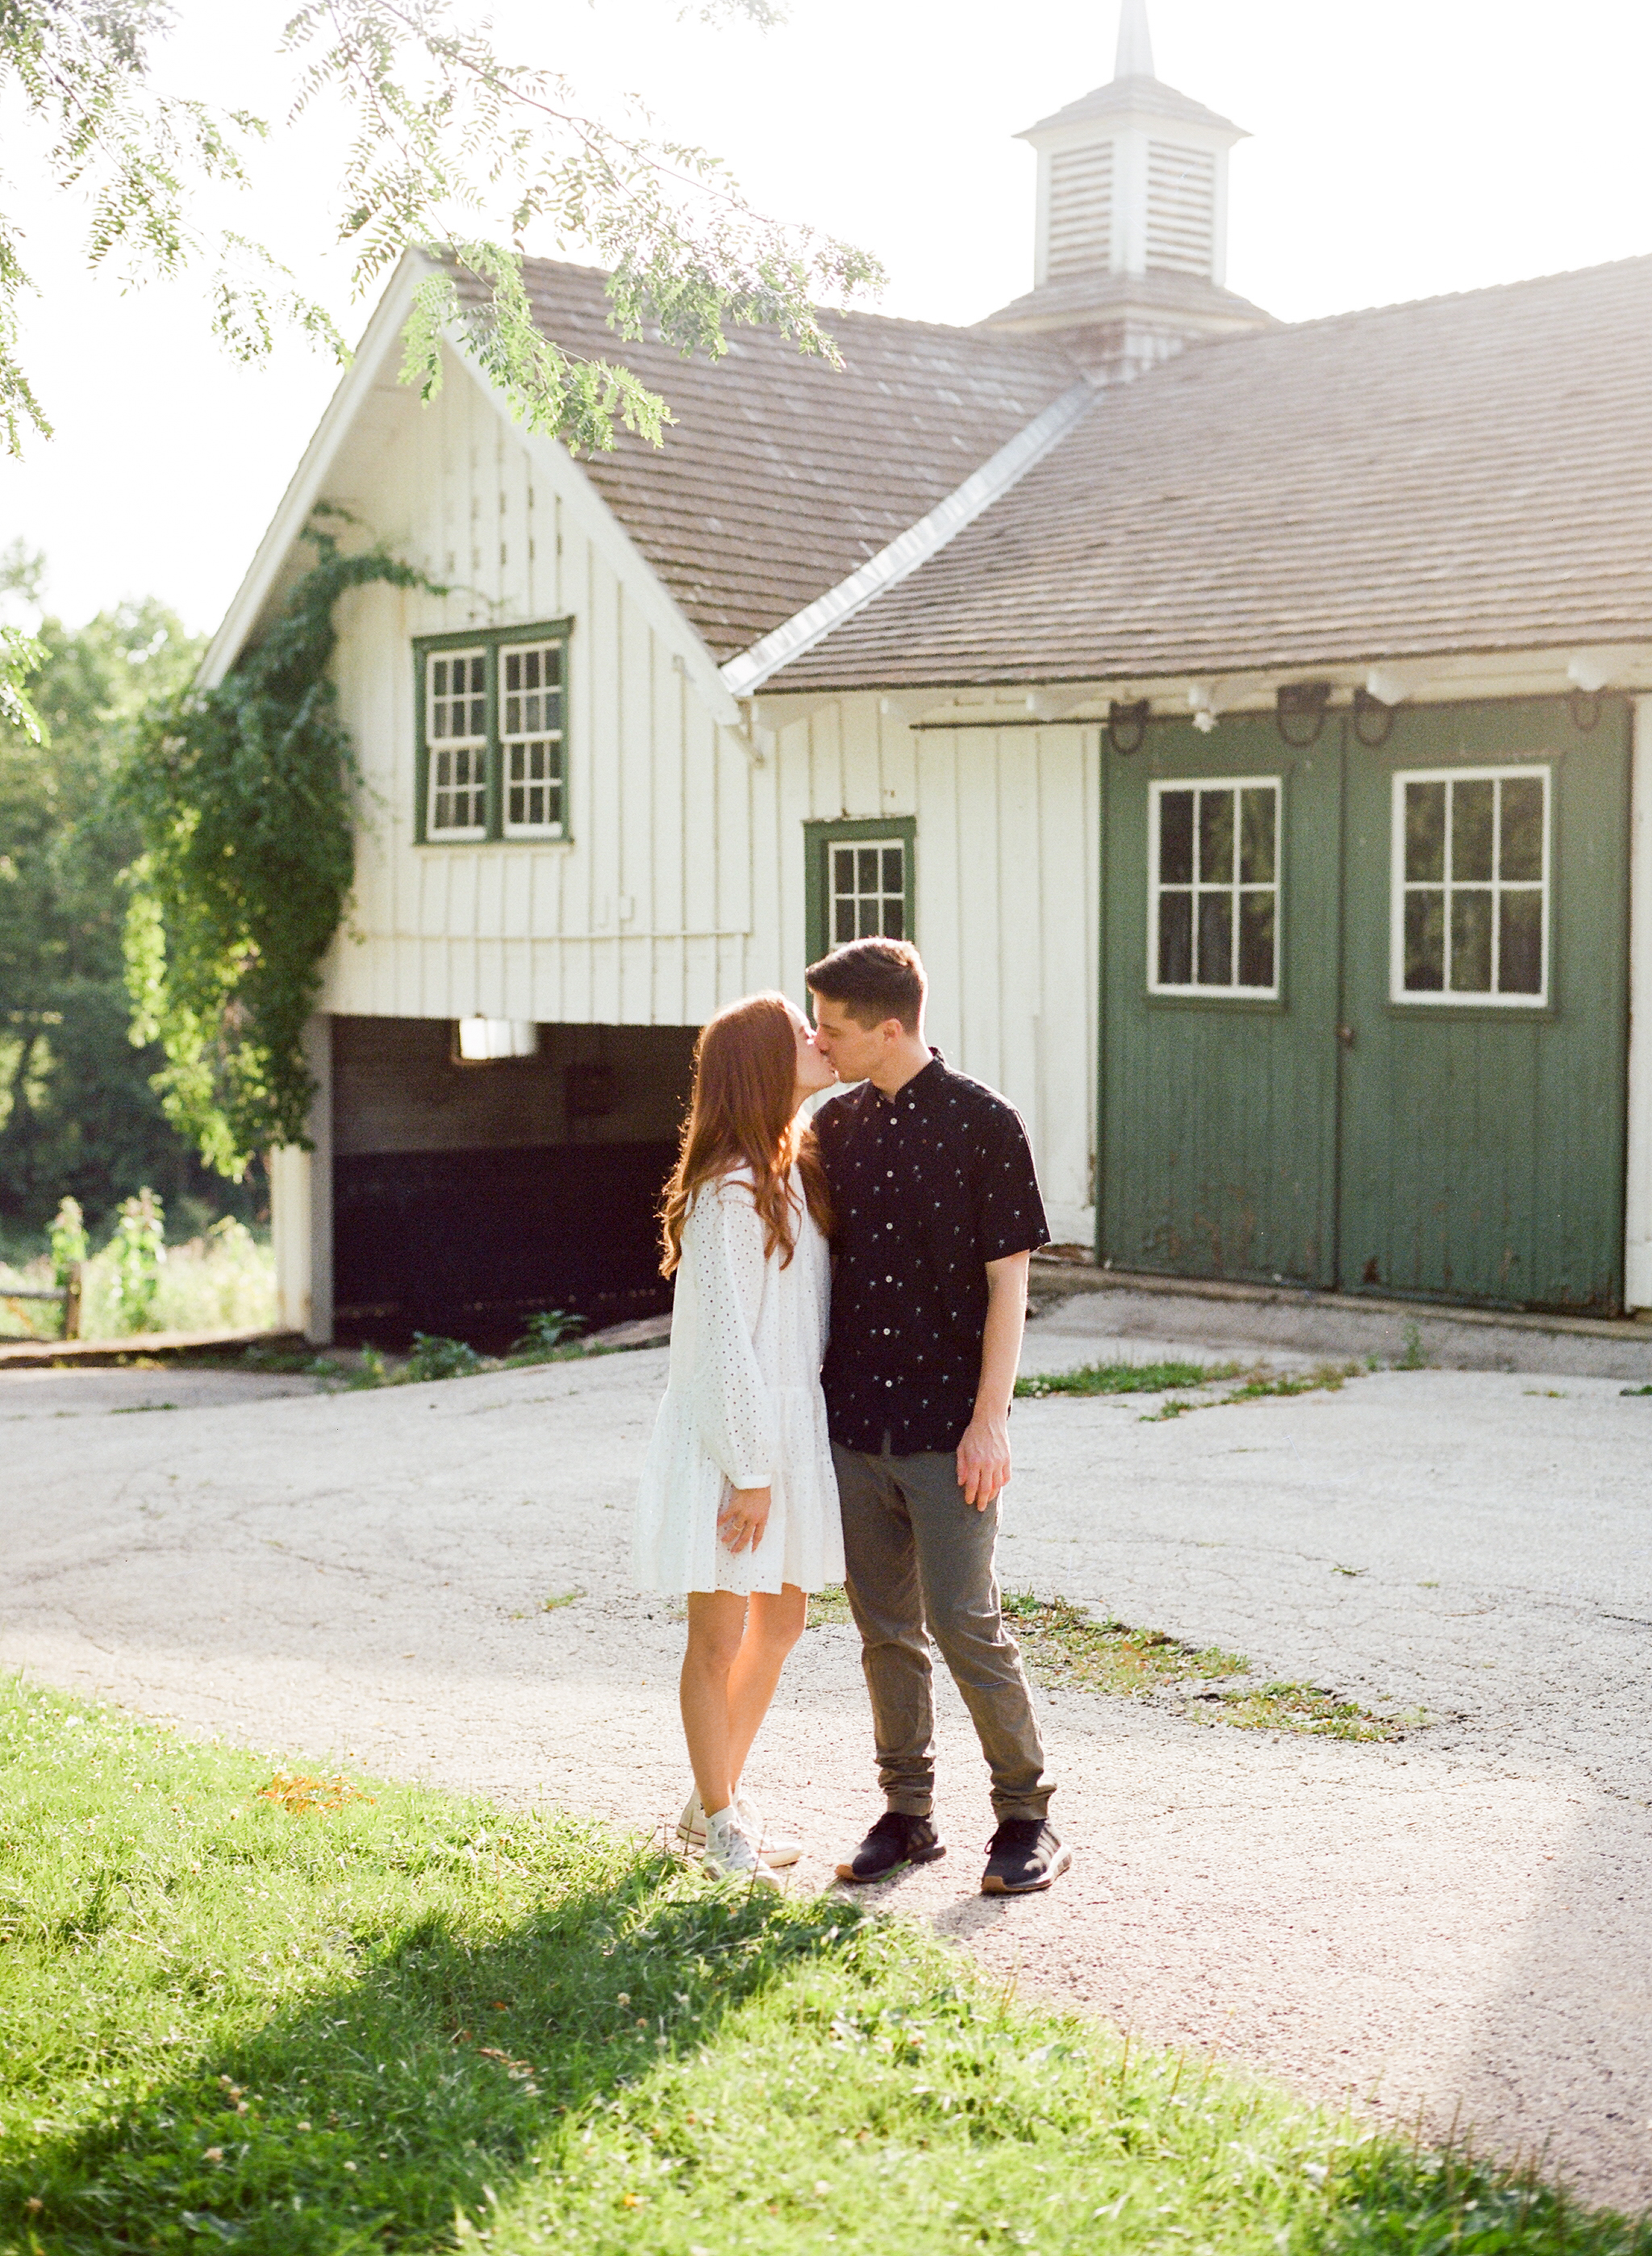 valley-forge-engagement-session-hope-helmuth-photography-18.jpg